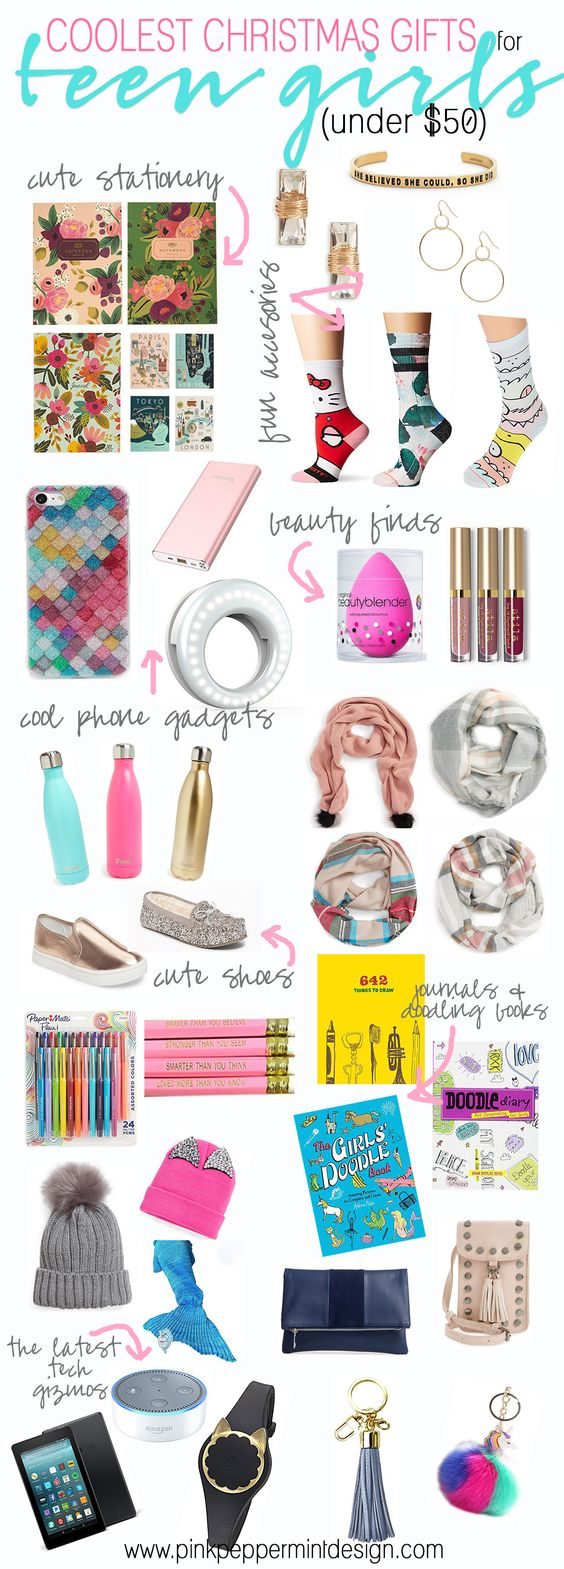 Best Gifts for Your Teenage girl 4